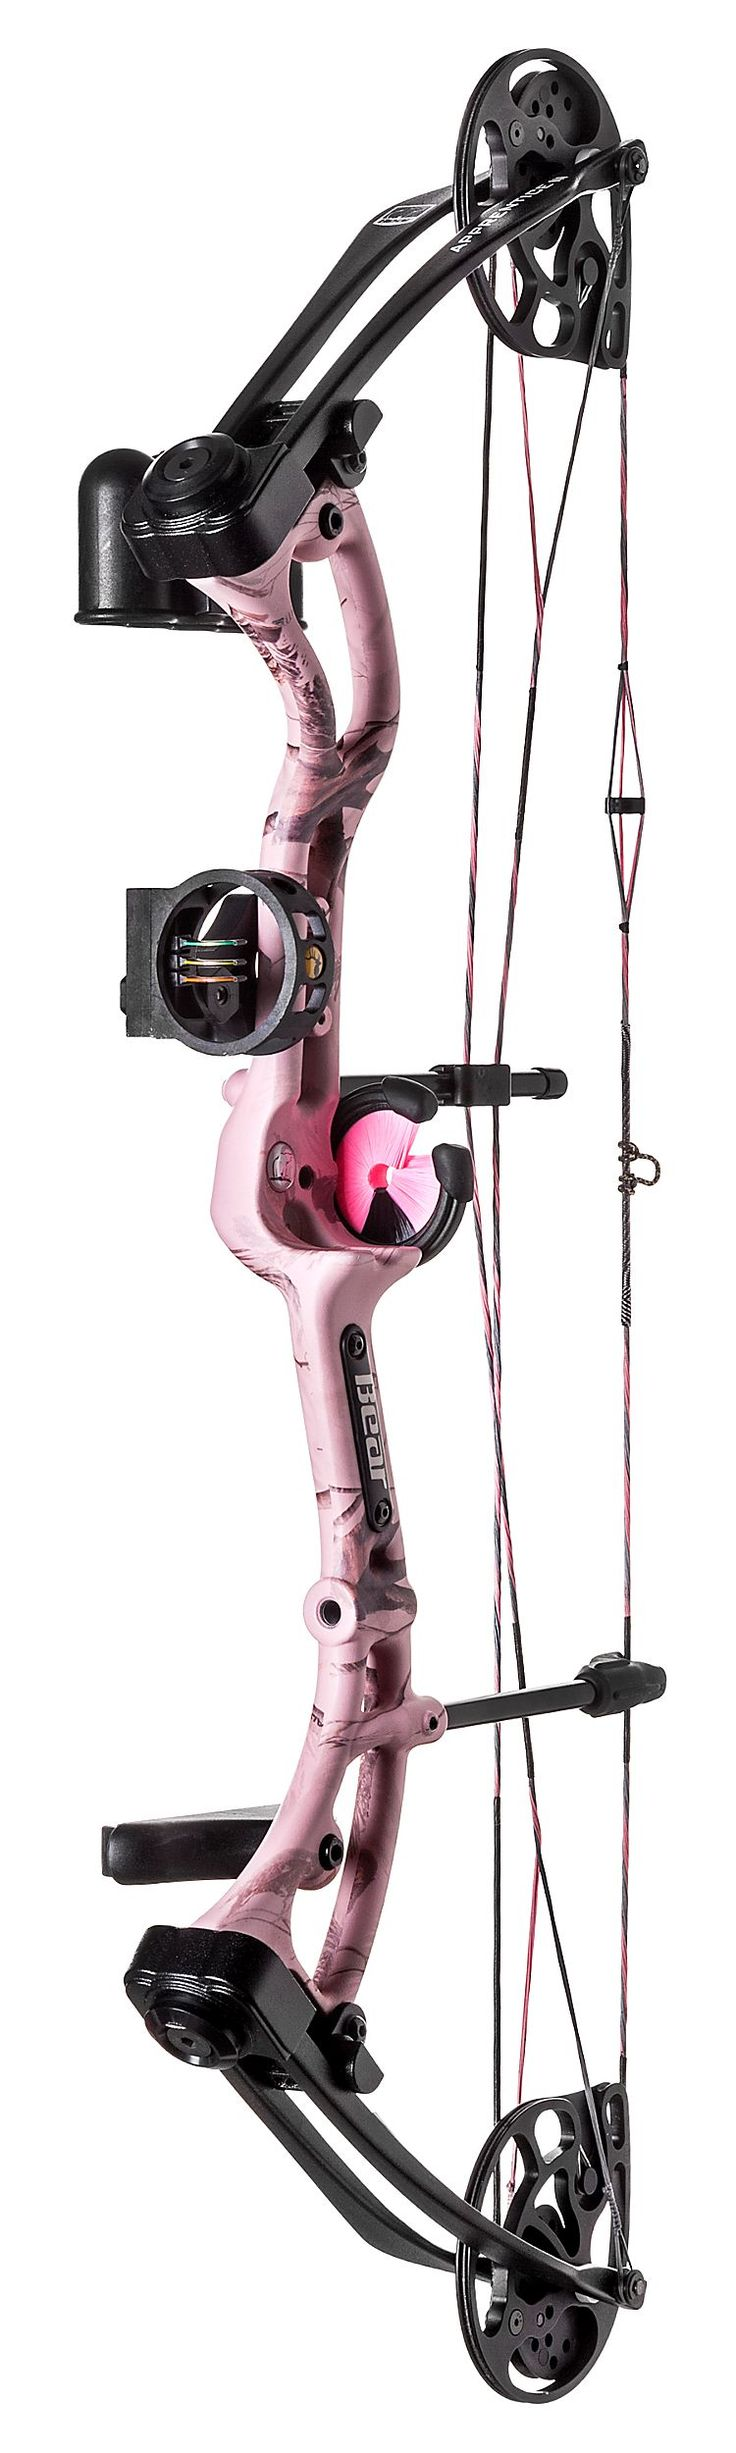 Bear Archery Apprentice 3 RTH Compound Bow Packages | Bass Pro Shops